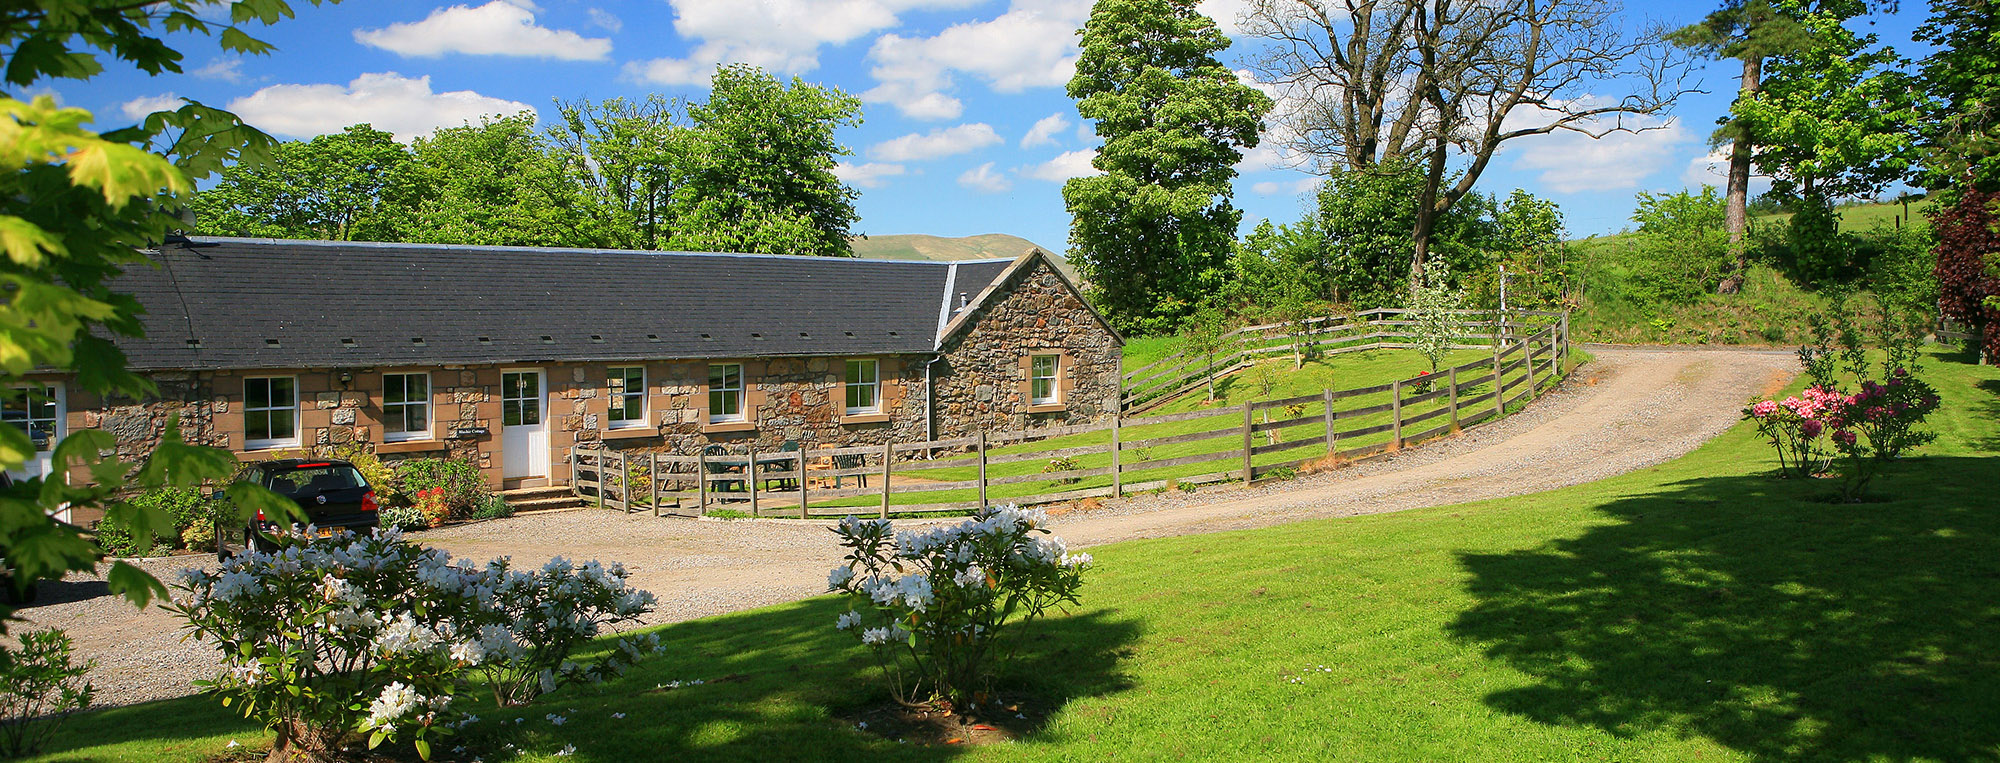 countryside holiday home Dollar, Clackmannanshire